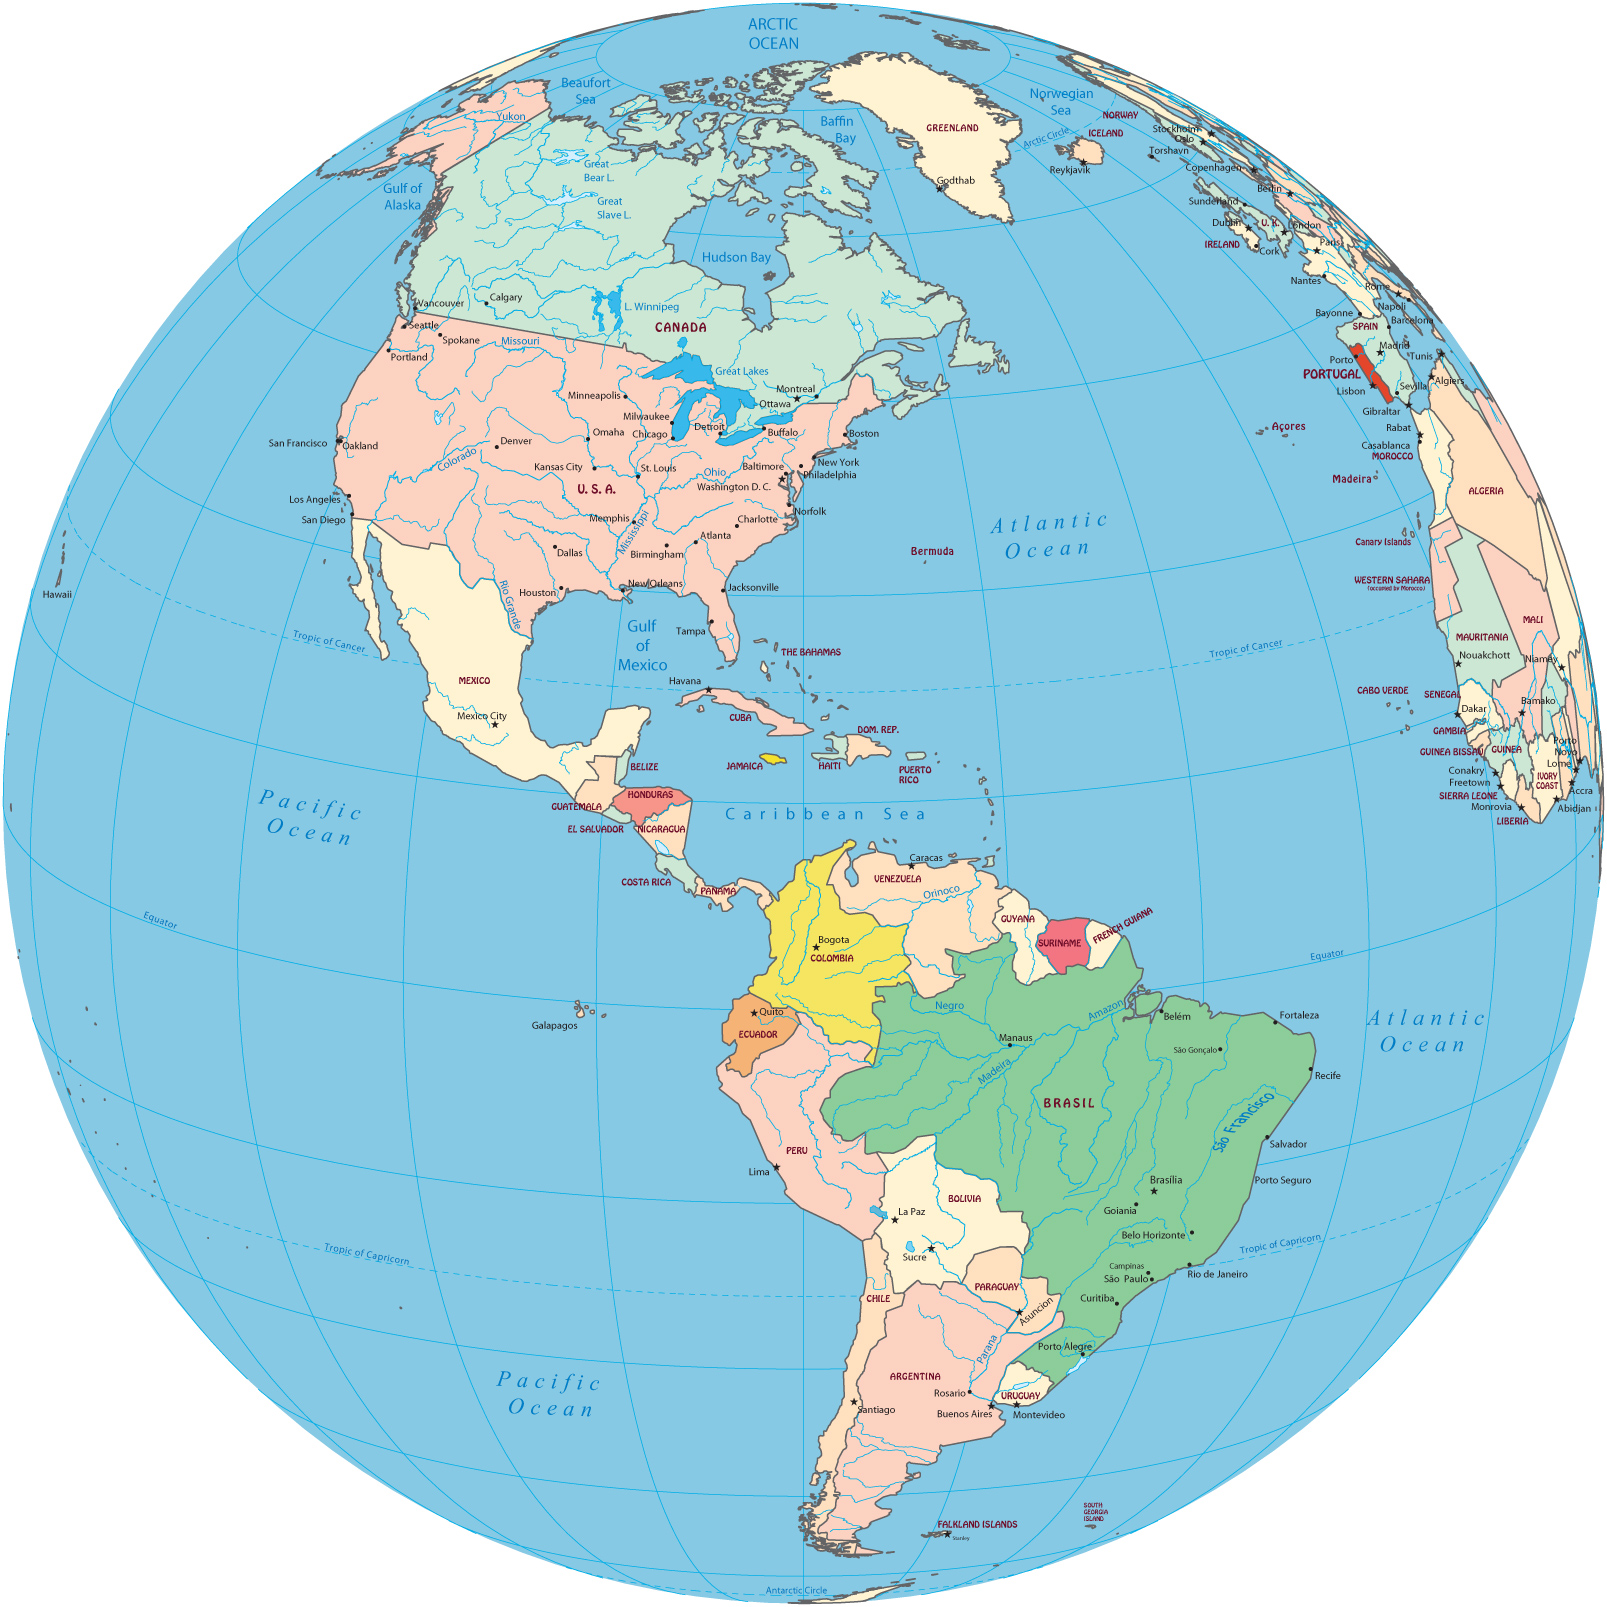 Americas political map globe caribbean sea north america political map countries of south america argentina and brasil gumiabroncs Image collections